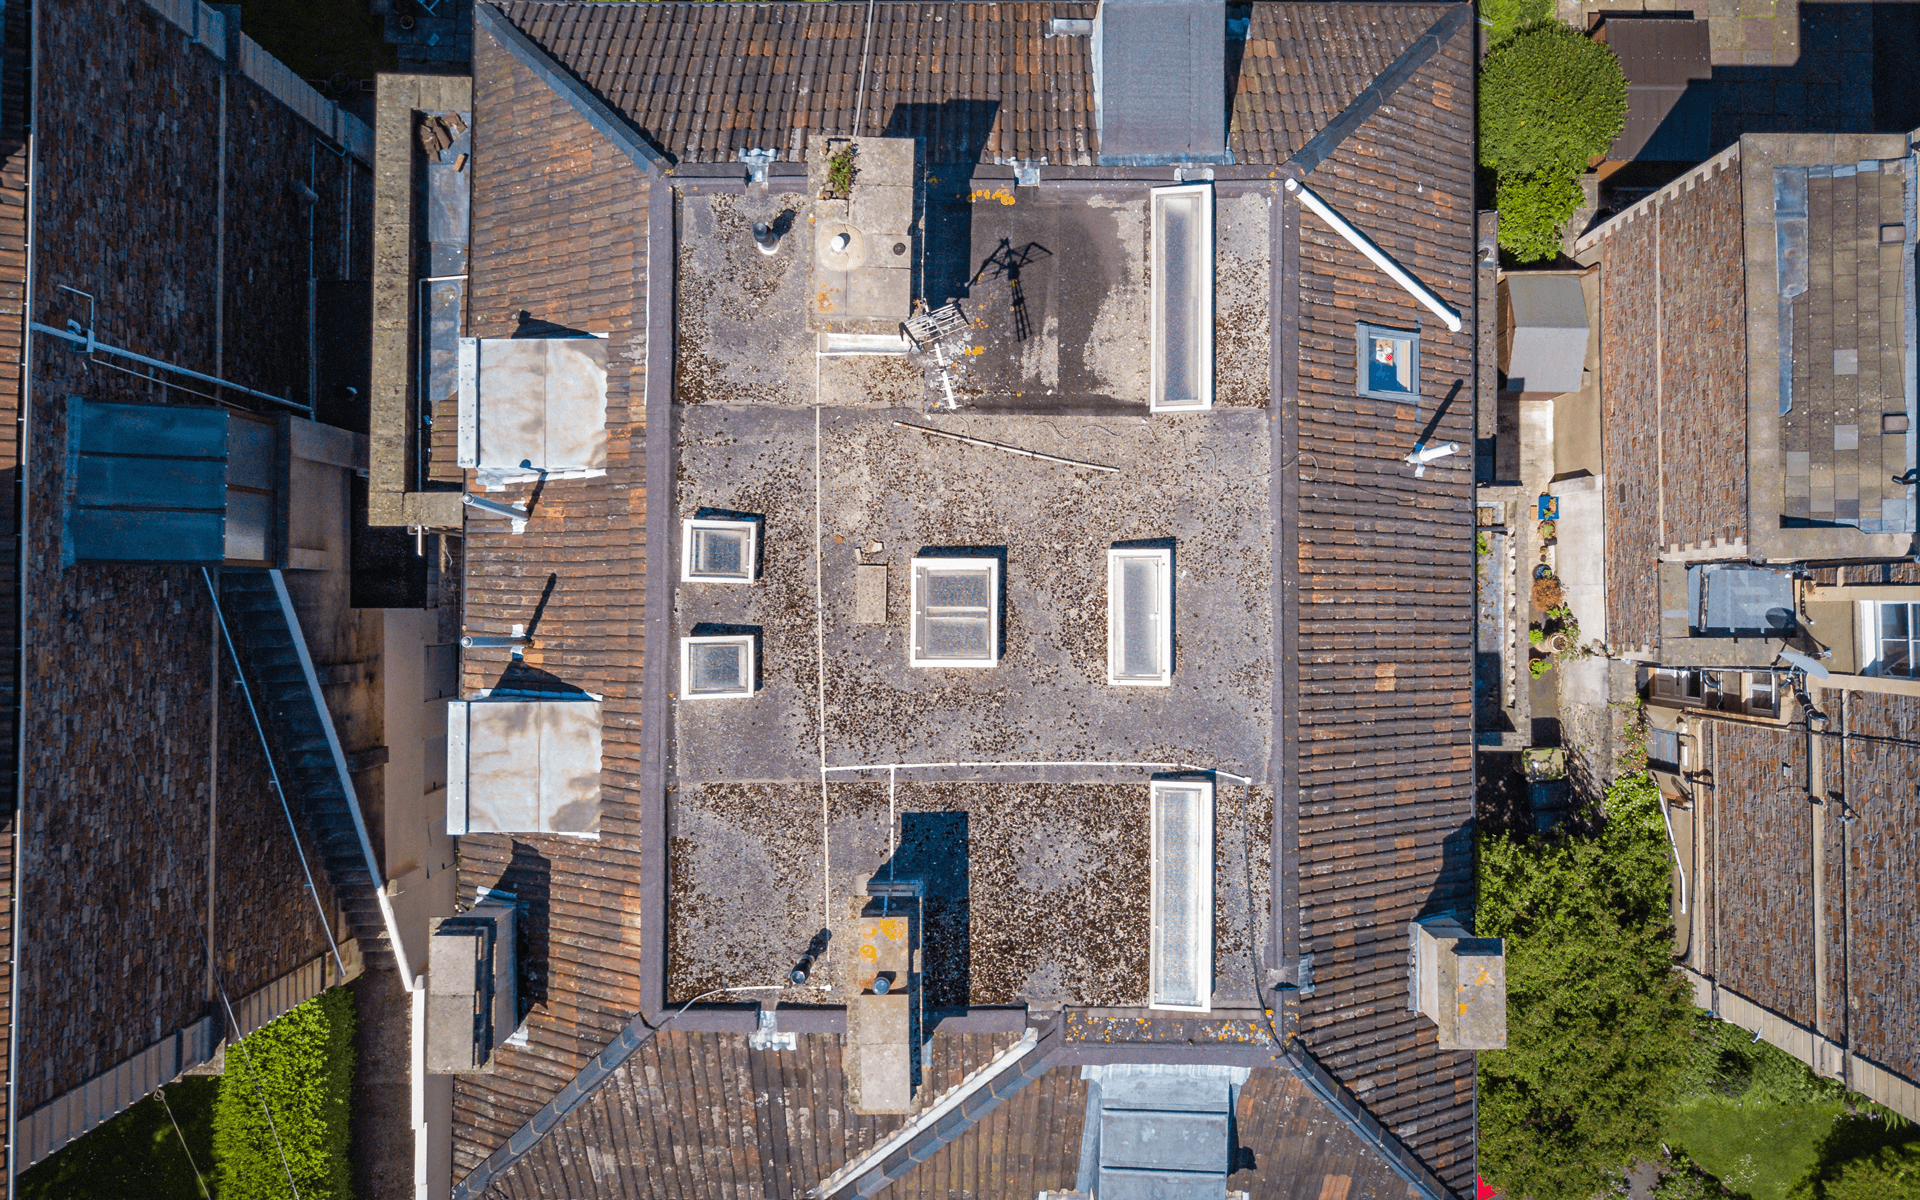 """Mavic Pro"" aerial drone photo for a roof survey at ""The West Of England Friends Housing Society"""